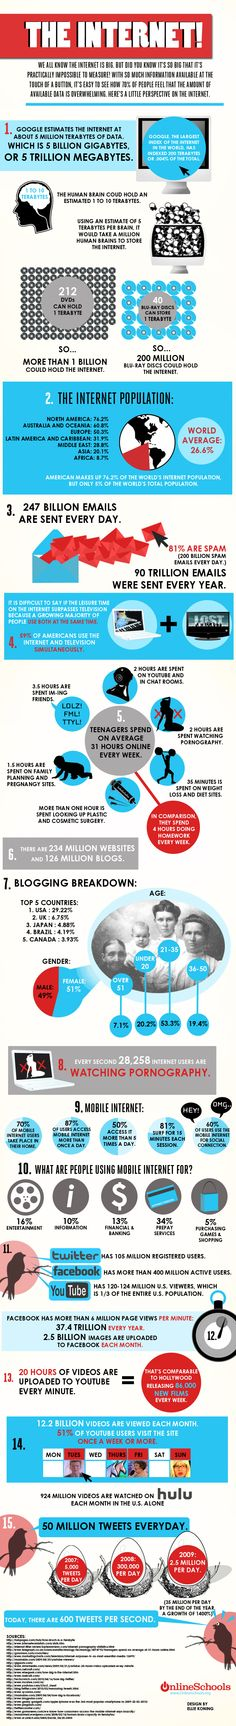 Internet Infographic. Stats for just about all the interwebs goings-on.